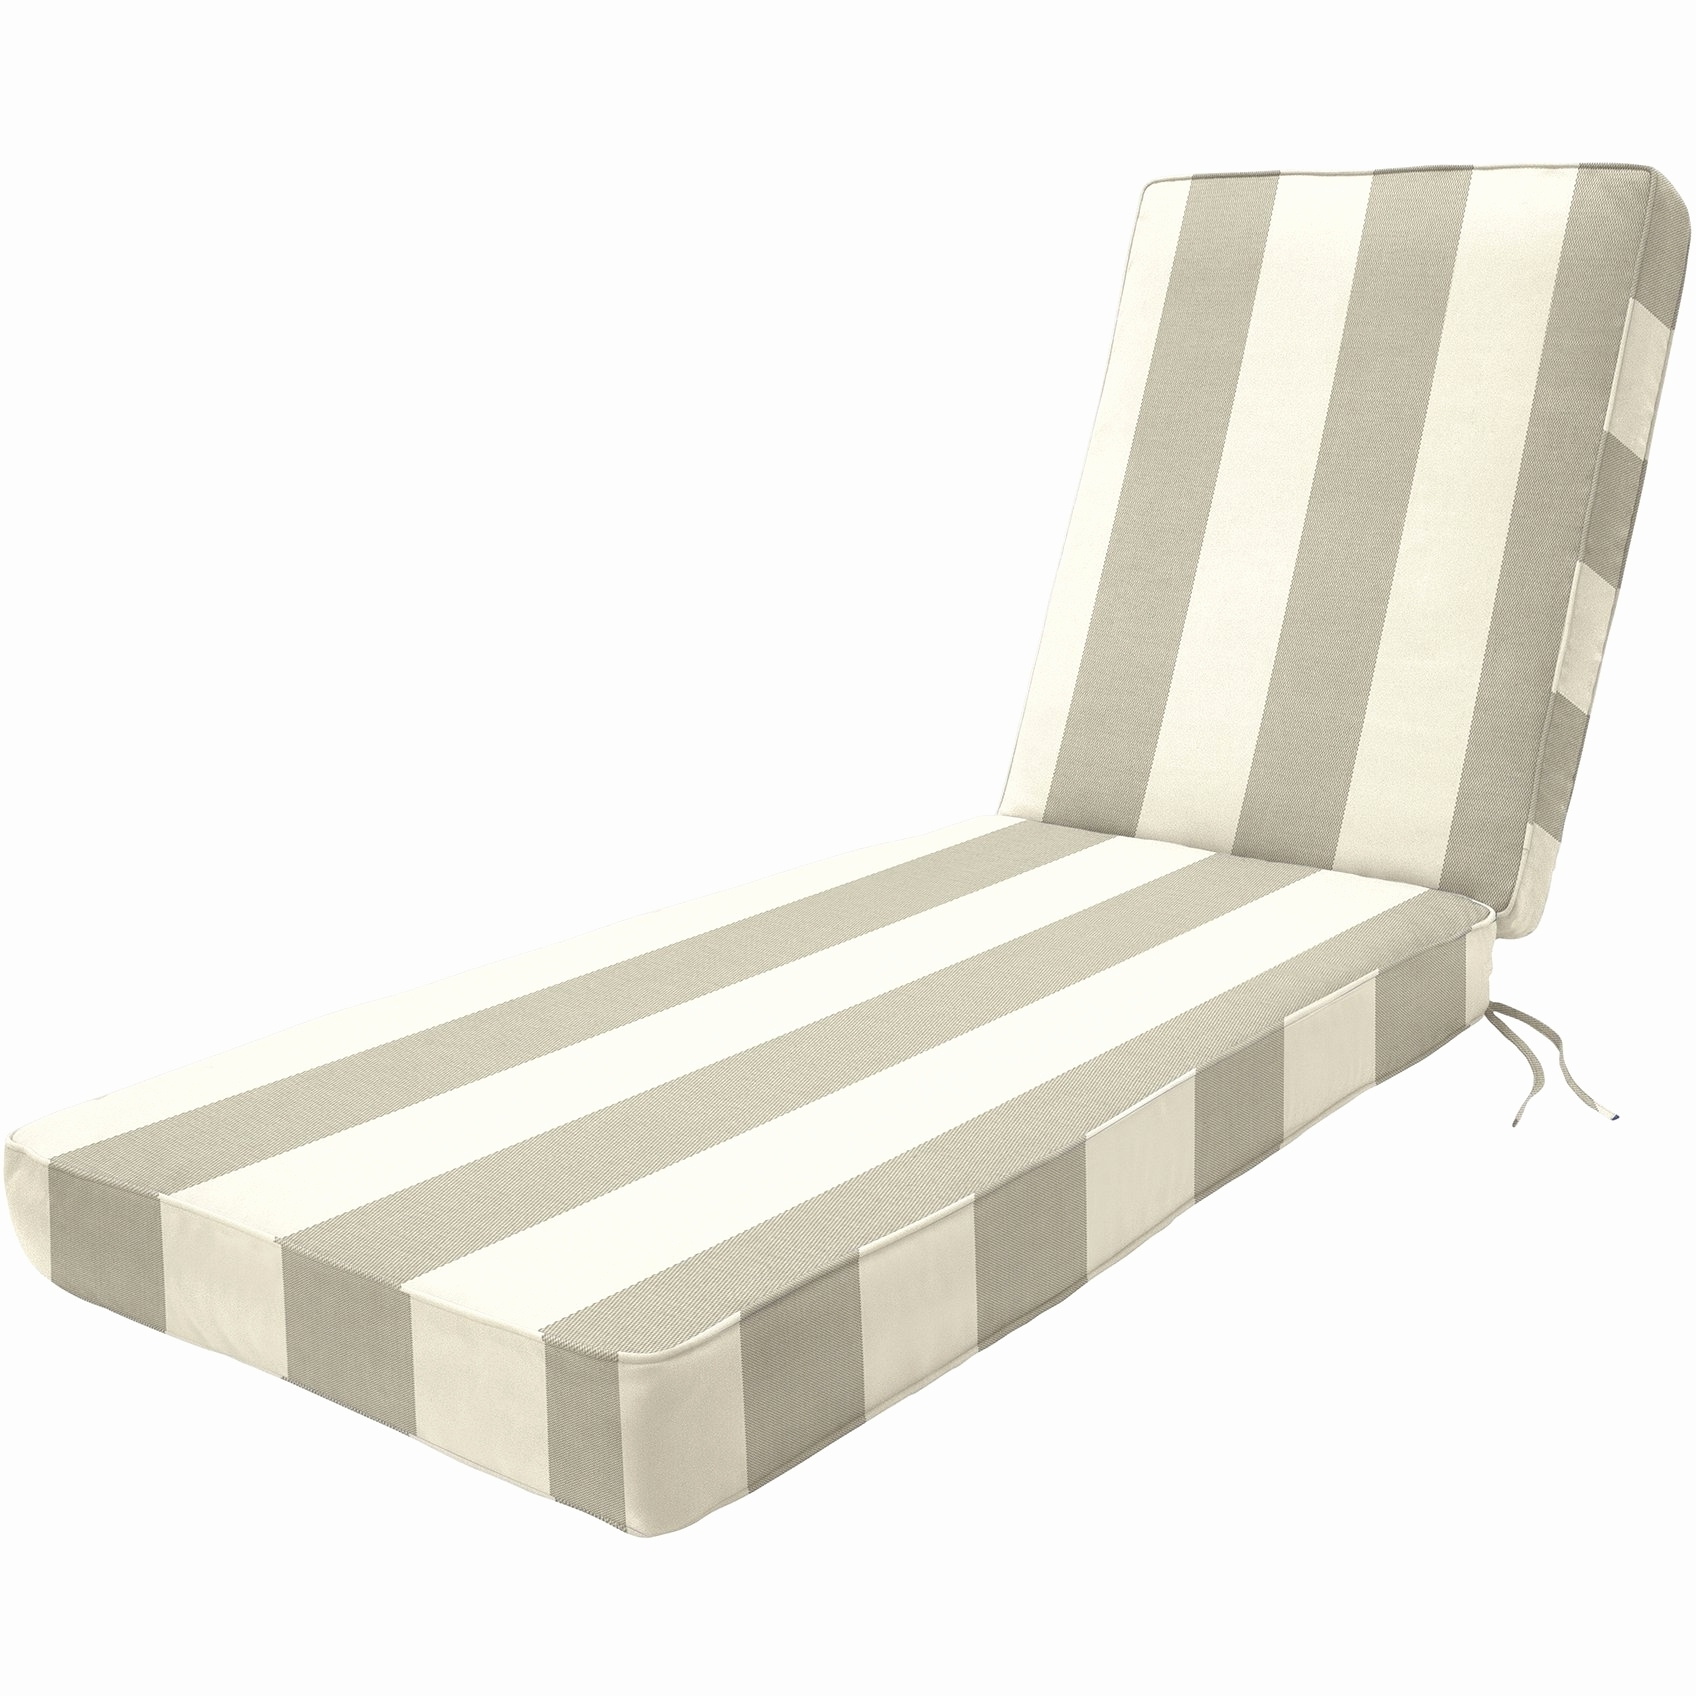 Chaise Lounge Chairs At Target In 2018 Outdoor : Lowes Chaise Lounge Lounge Chair Target Plastic Lounge (View 2 of 15)